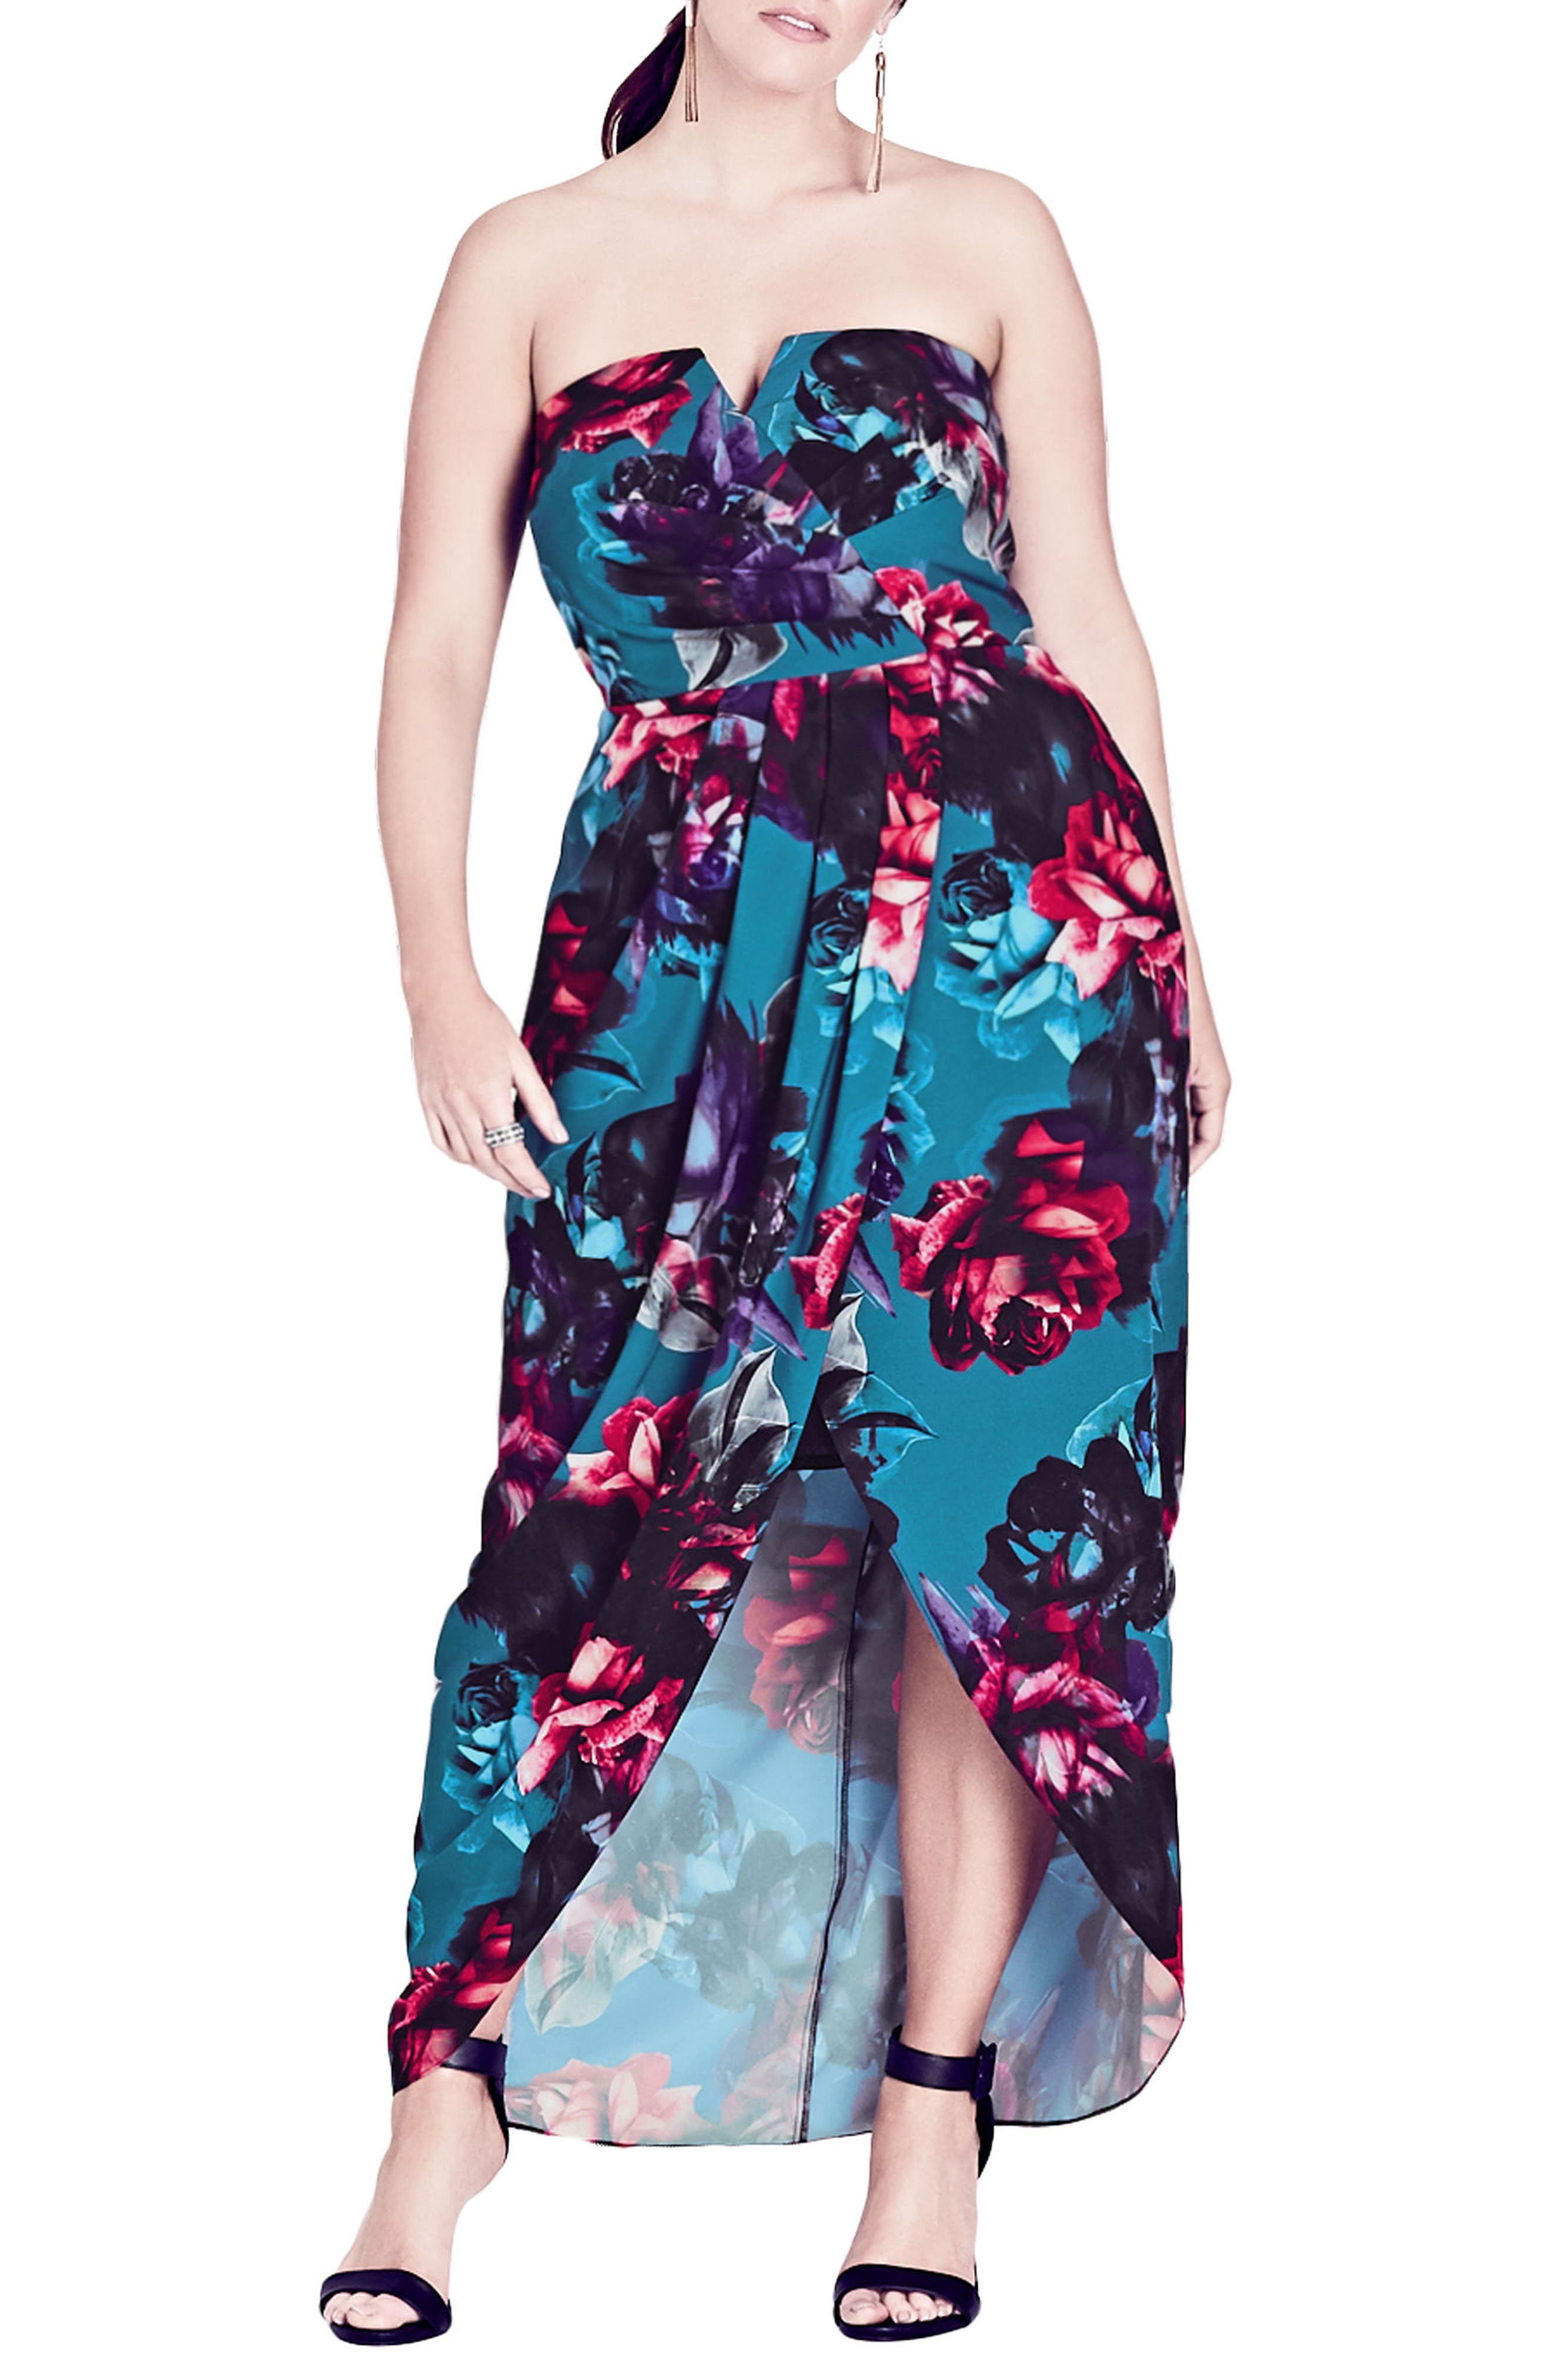 Alternate Image 1 Selected - City Chic Jewel Floral Maxi Dress (Plus Size)